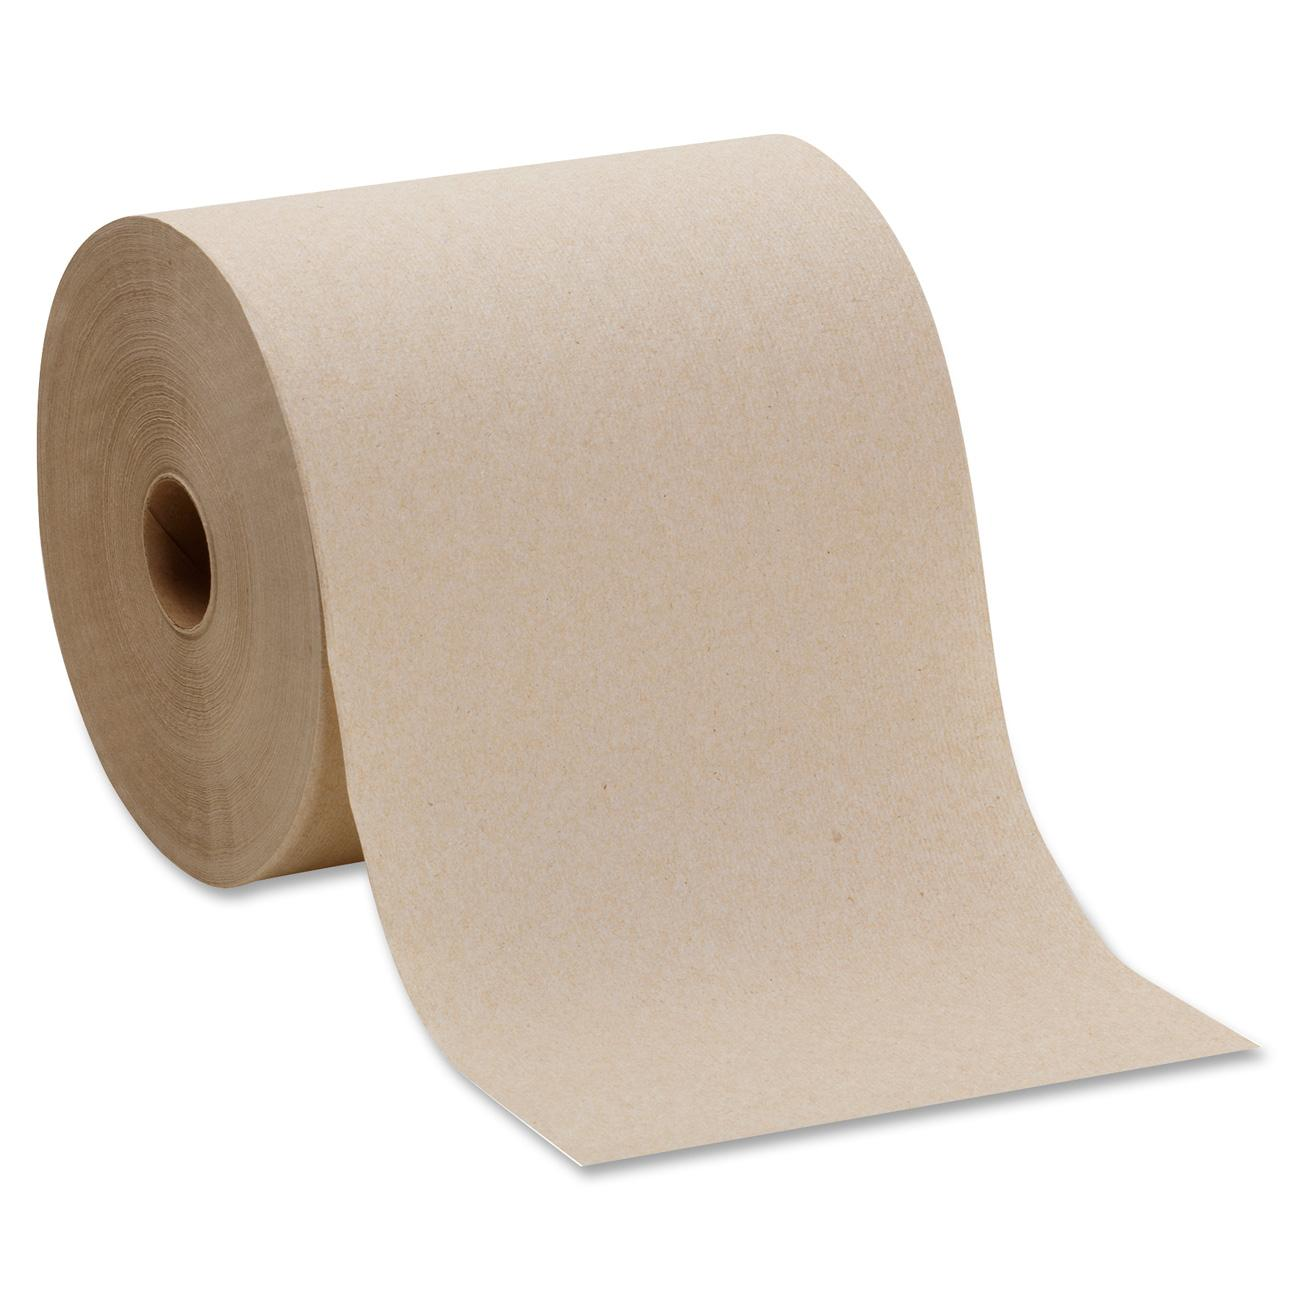 Georgia-Pacific Envision® Brown High Capacity Roll Paper Towel, 26301, 800ft per Roll, 6 Rolls per Case